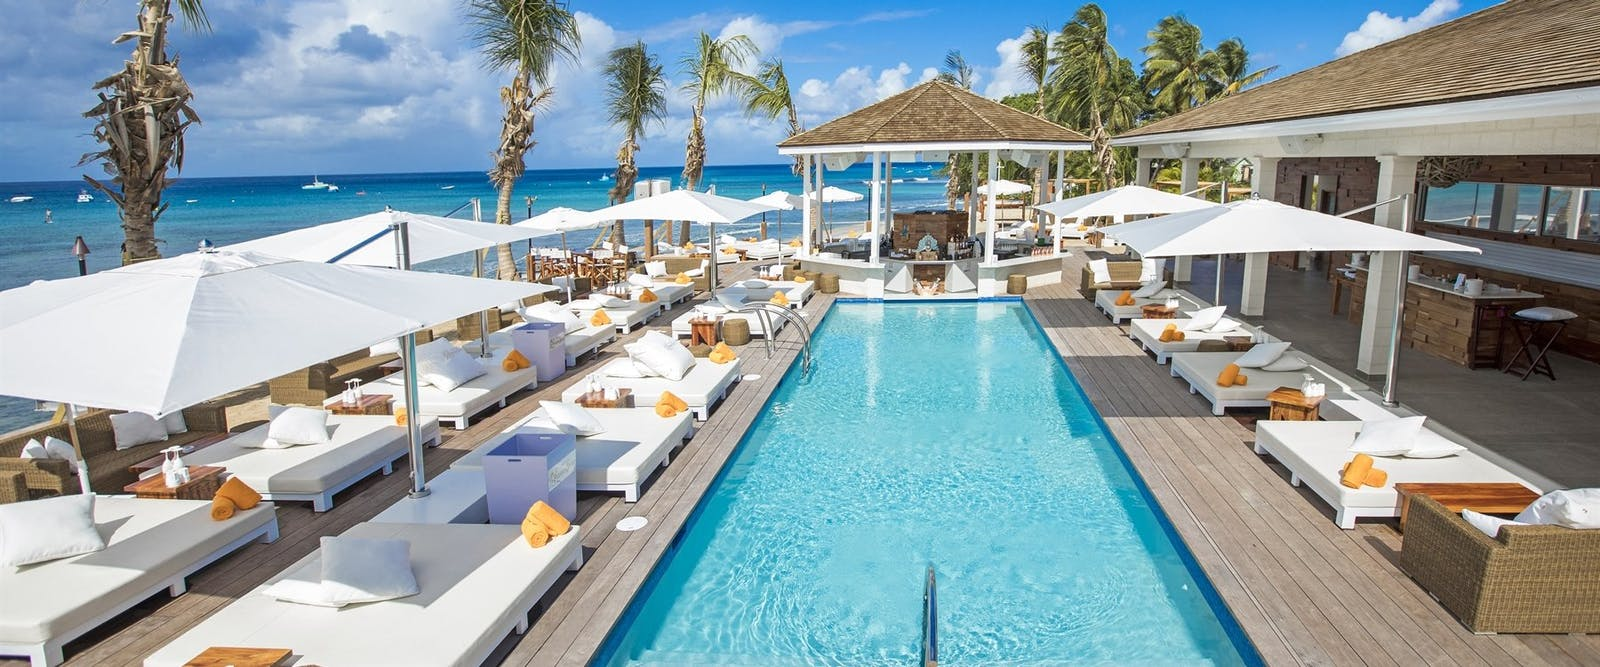 Nikki Beach Pool at Port Ferdinand Marina & Luxury Residences, Barbados